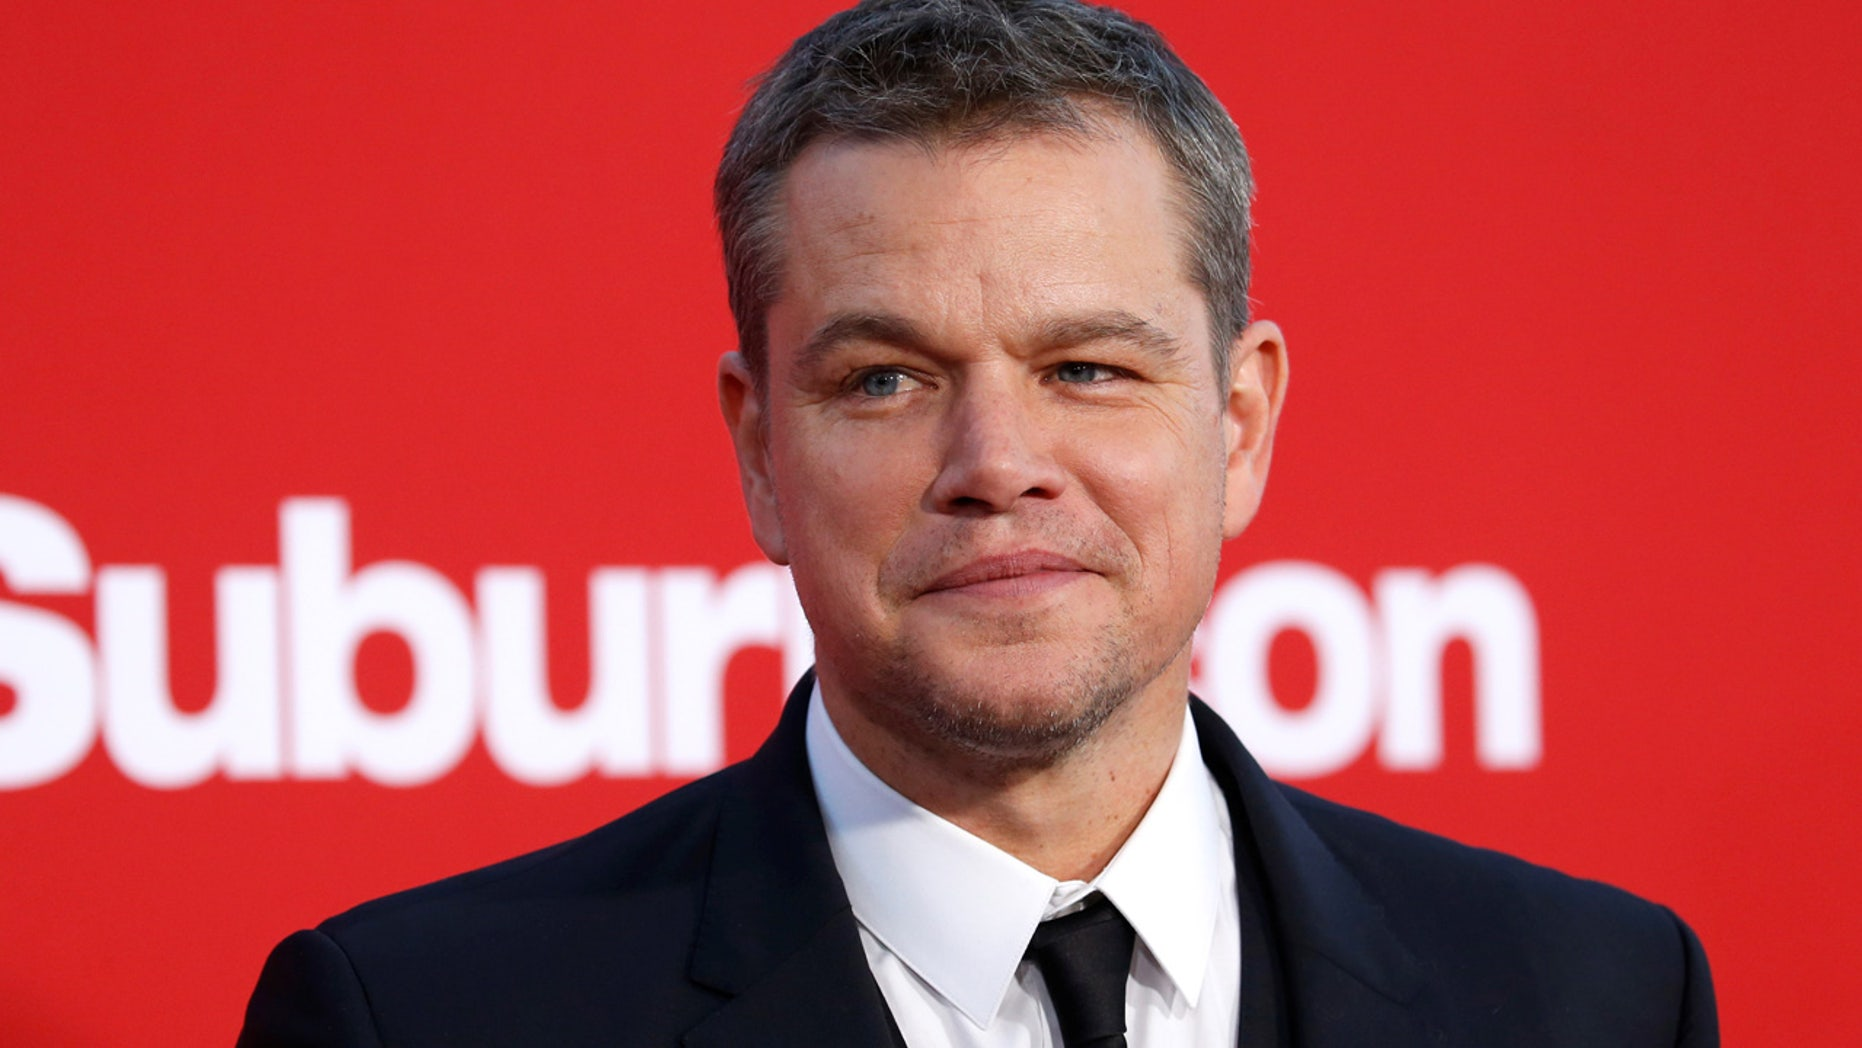 Matt Damon says he only just stopped using the 'f-slur for homosexual' people at the behest of his daughter